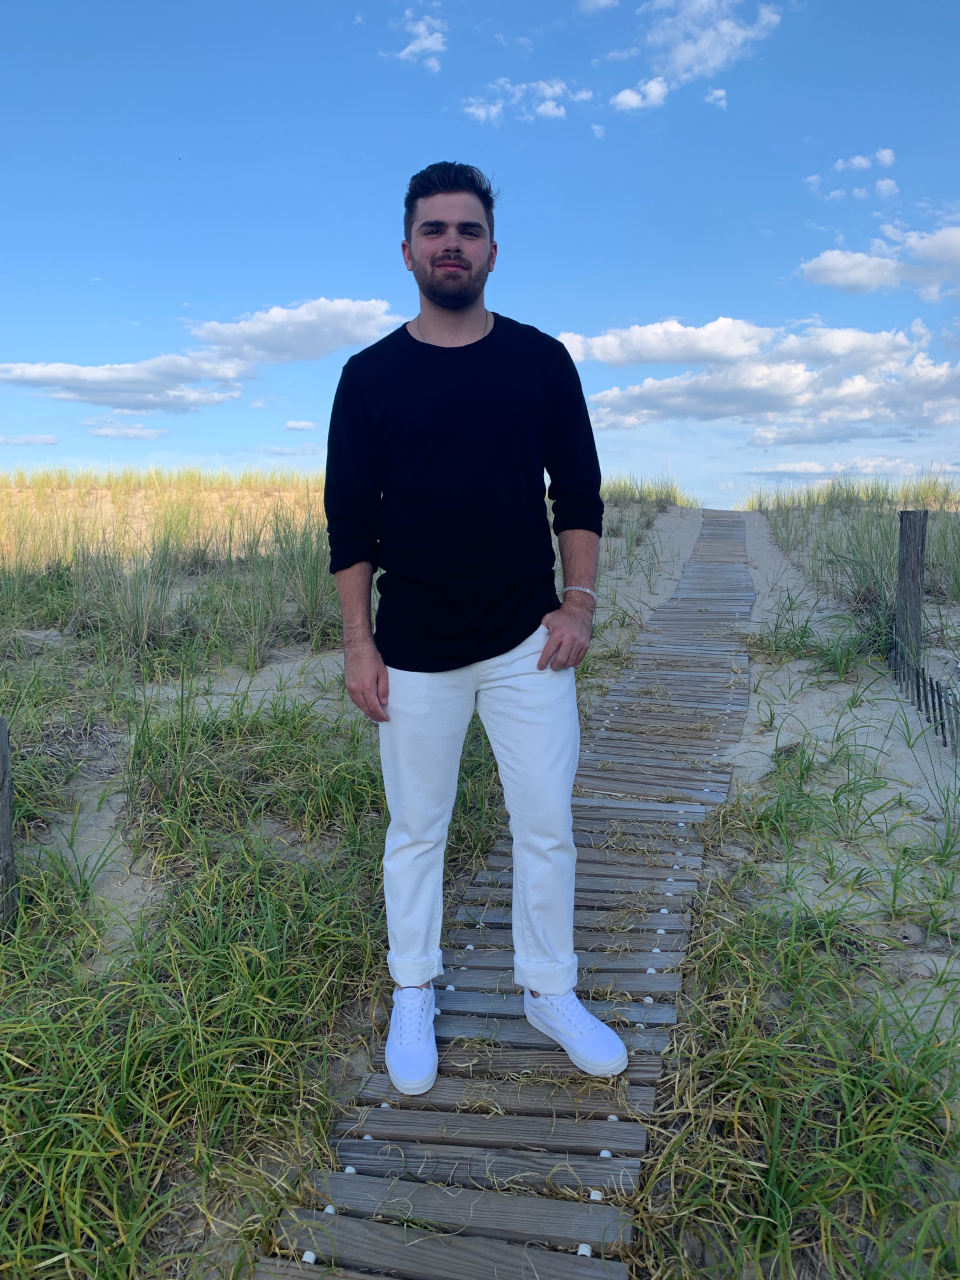 Sean Mangin - TreasurerShow Name: Opinionated Facts (Spring)My show talks mostly about football and current events in sports relating to the impact it has on fantasy football and sports.